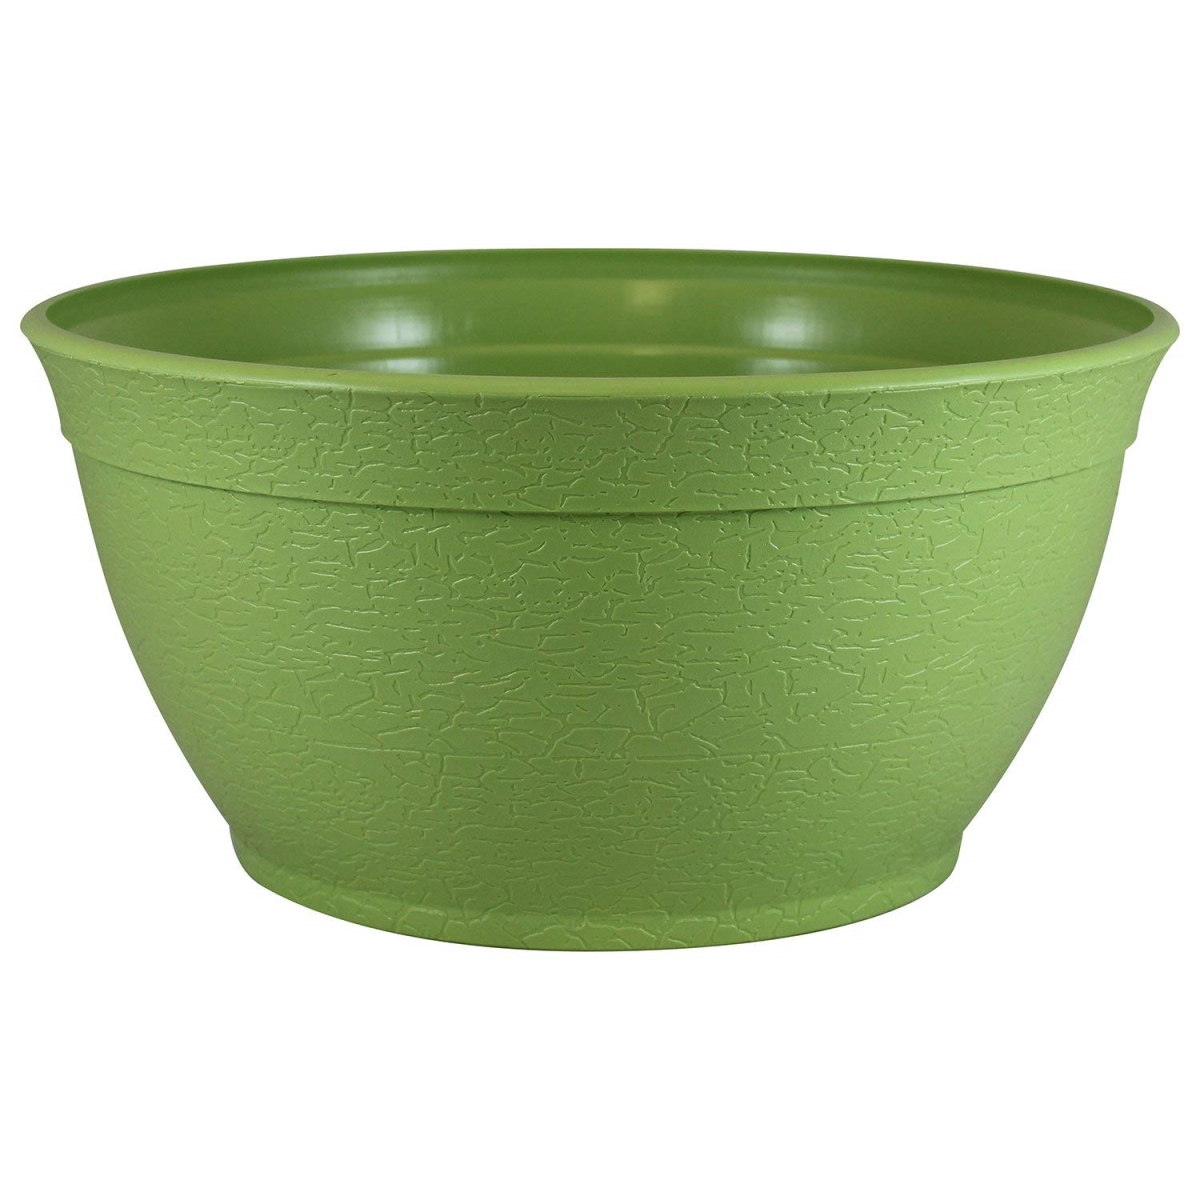 Bloomers 2449-1 24 in. Railing Planter with Drainage Holes &Weatherproof Resin Planter - Sage Green fl.oz